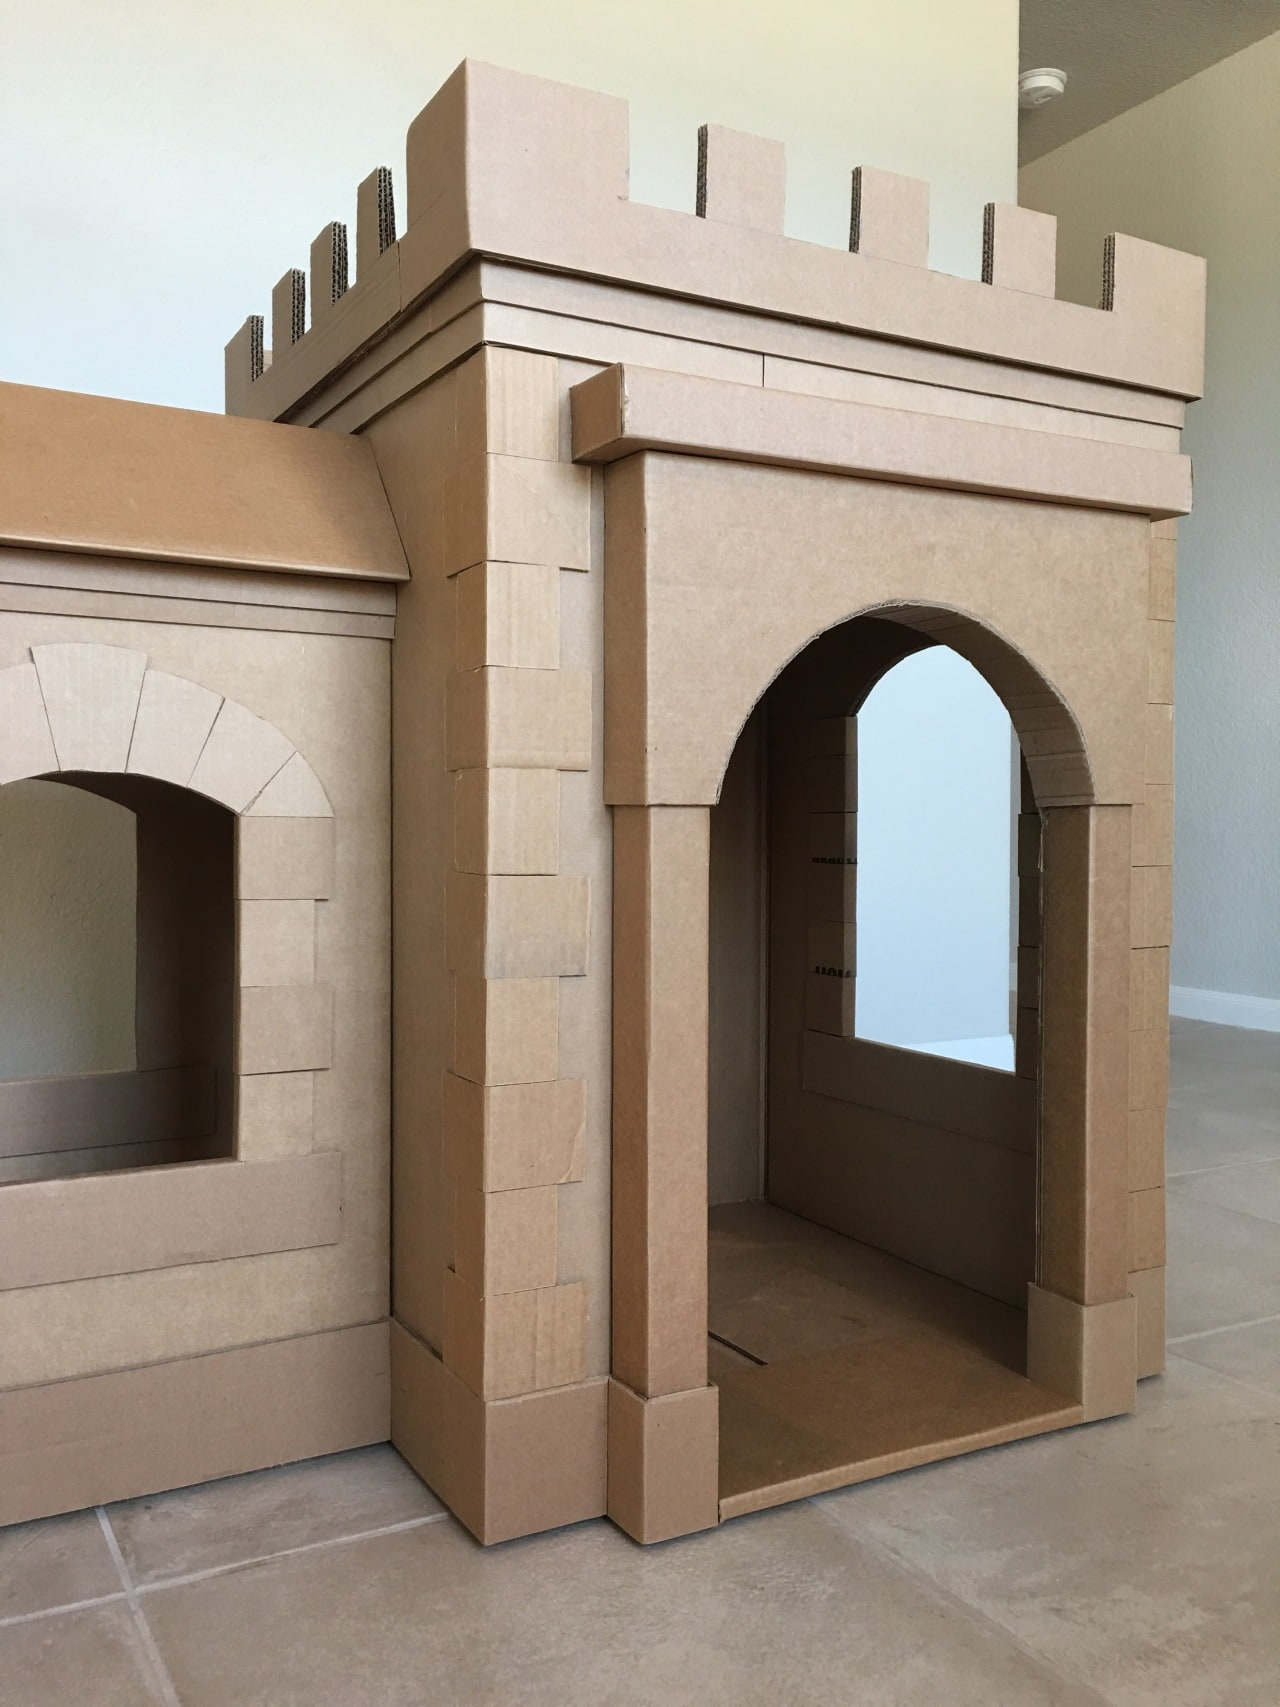 a kid 39 s dream cardboard castle made out of boxes brandon tran. Black Bedroom Furniture Sets. Home Design Ideas